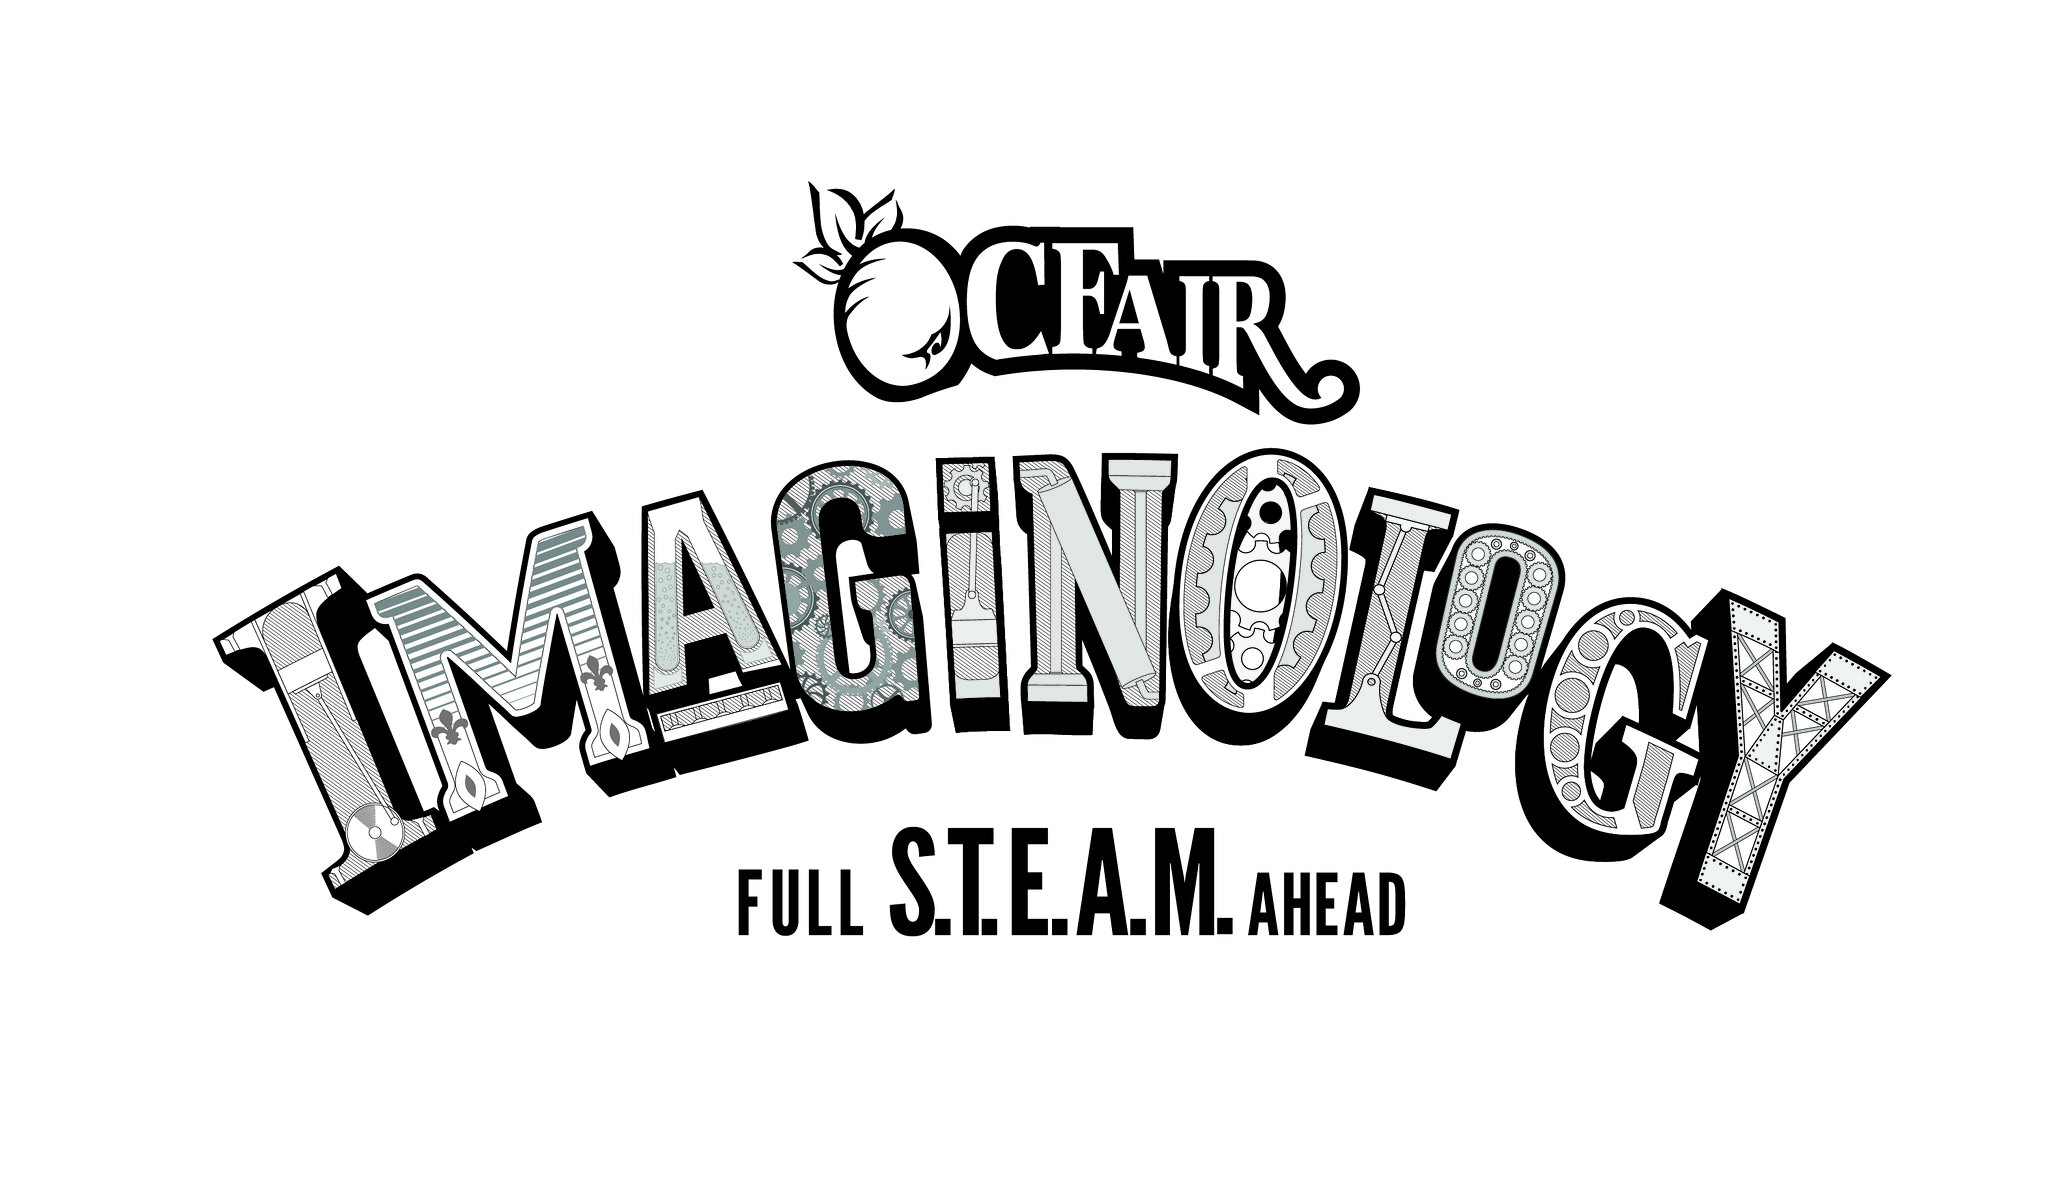 OC Fair Imaginology at the OC Fair & Event Center